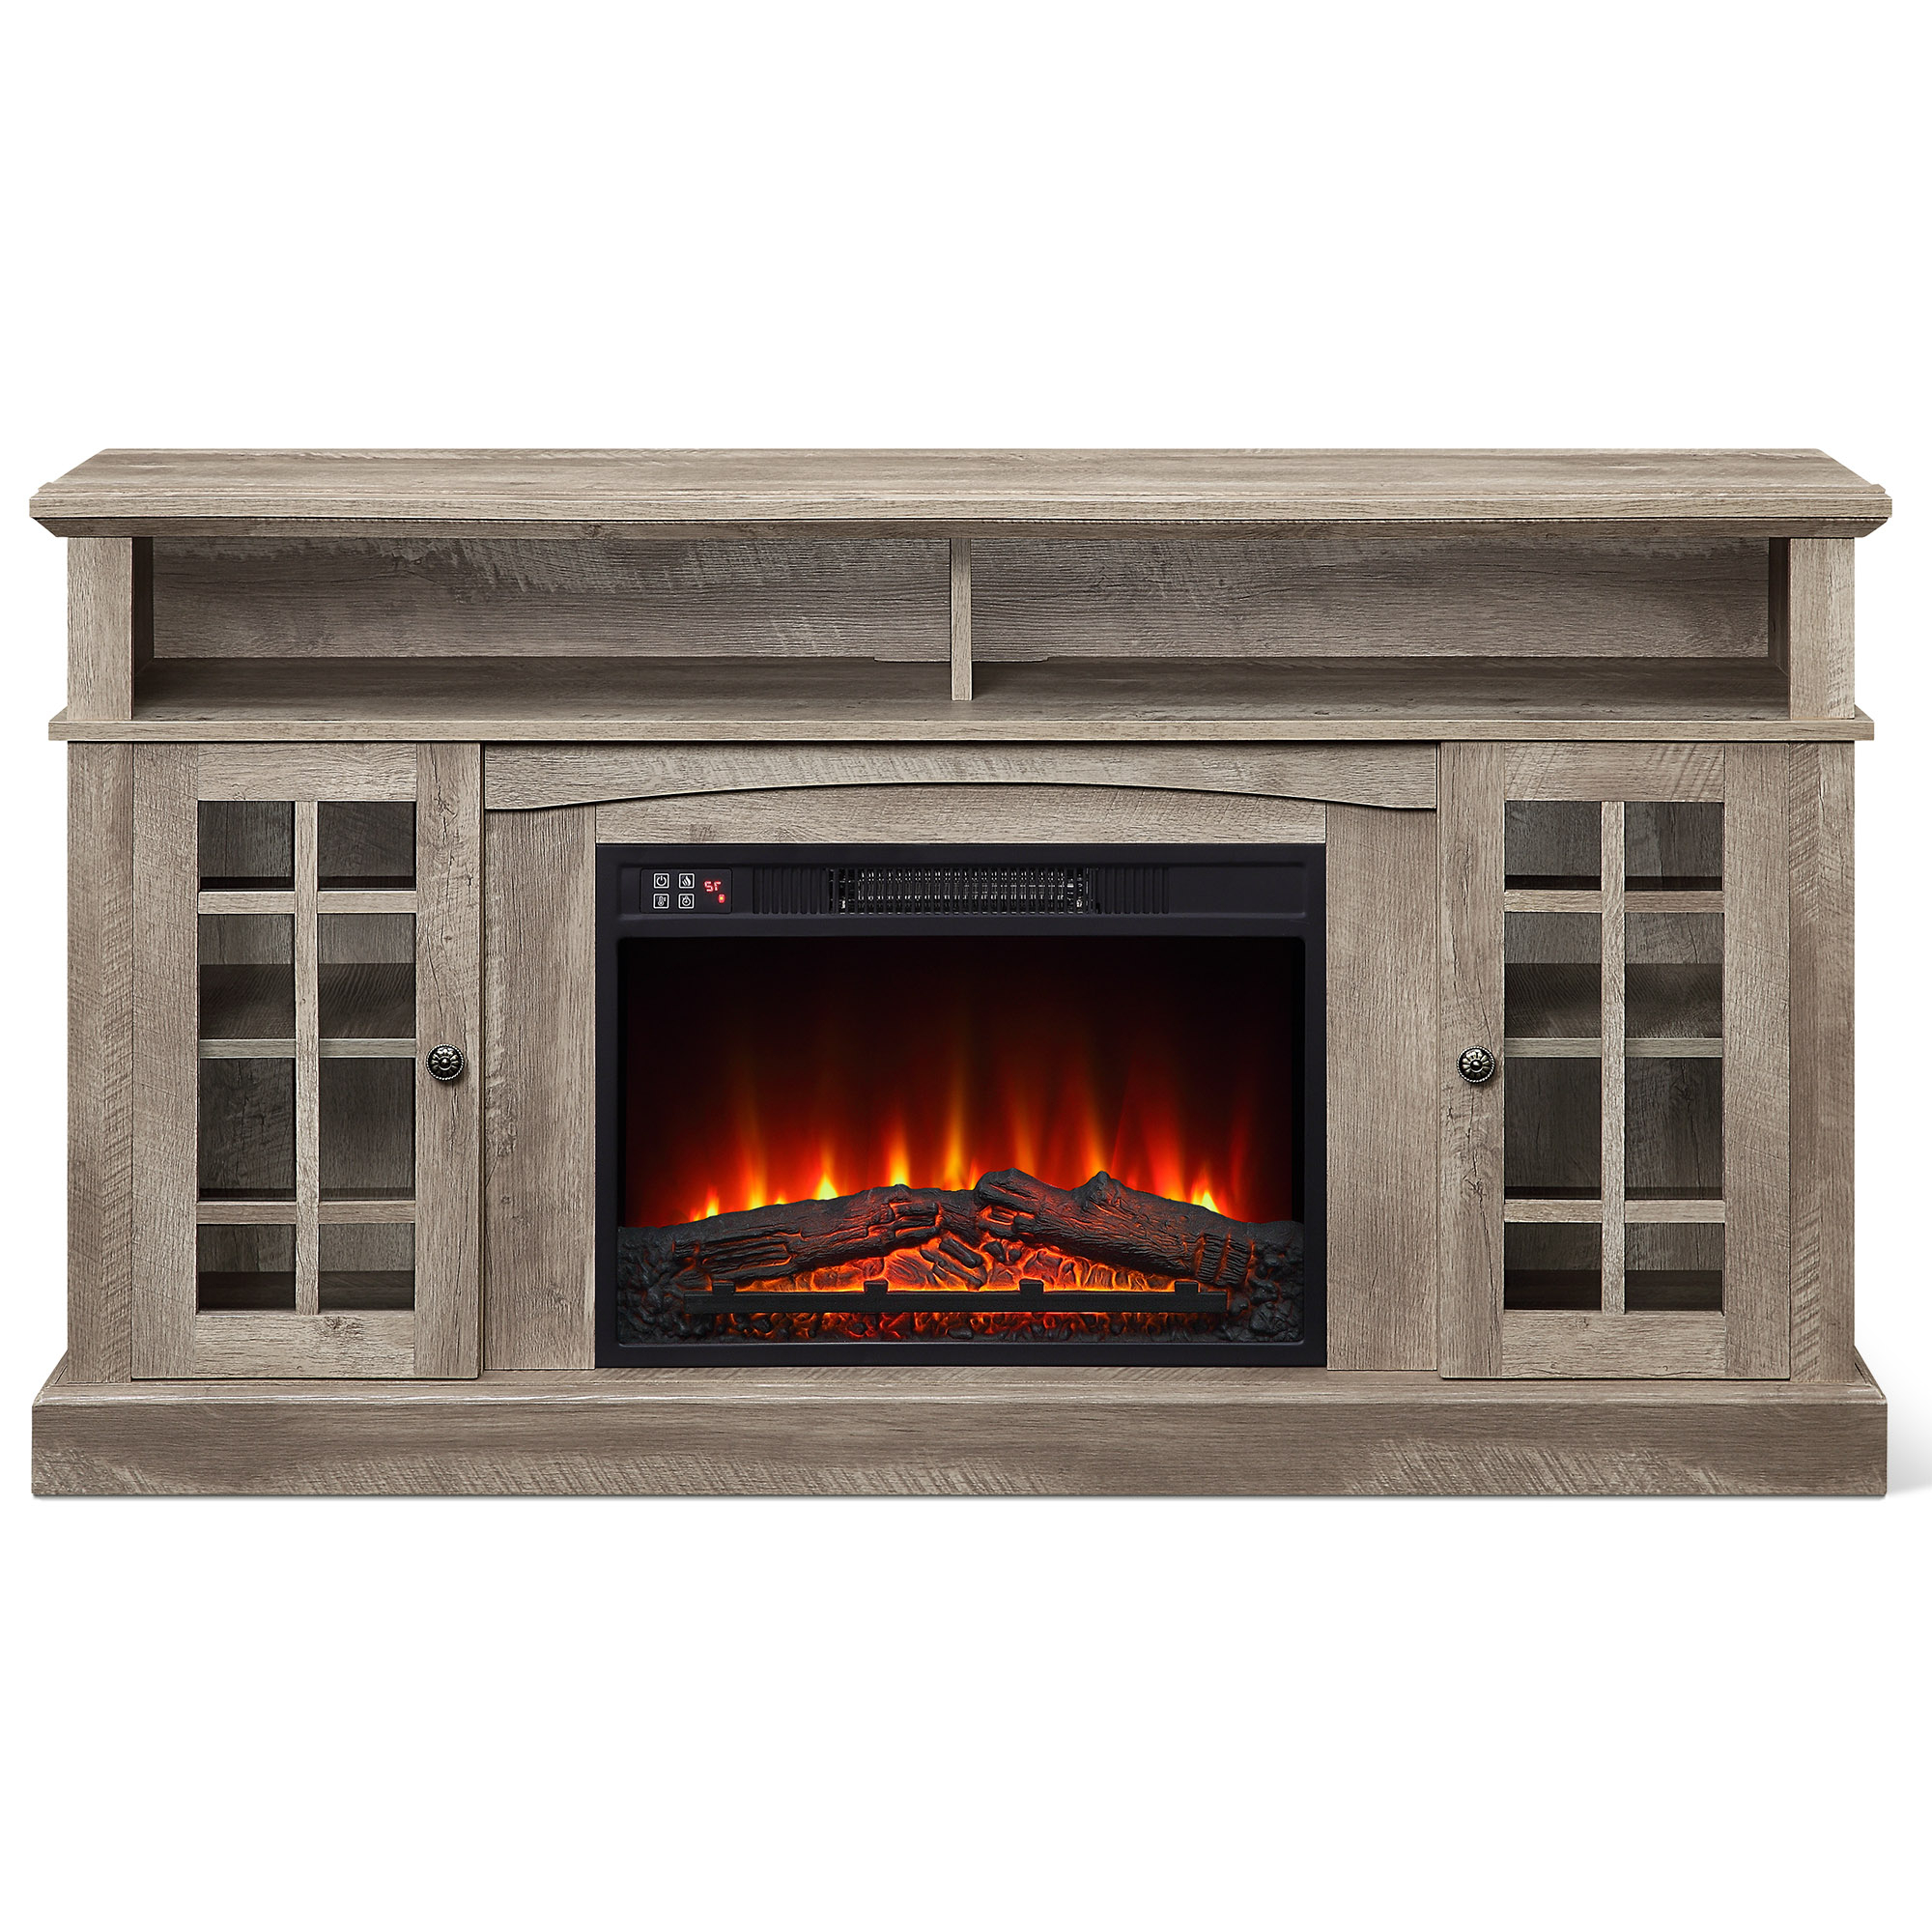 """Best And Newest Belleze Fireplace Tv Stand With Remote Control Console Throughout Totally Tv Stands For Tvs Up To 65"""" (View 20 of 25)"""